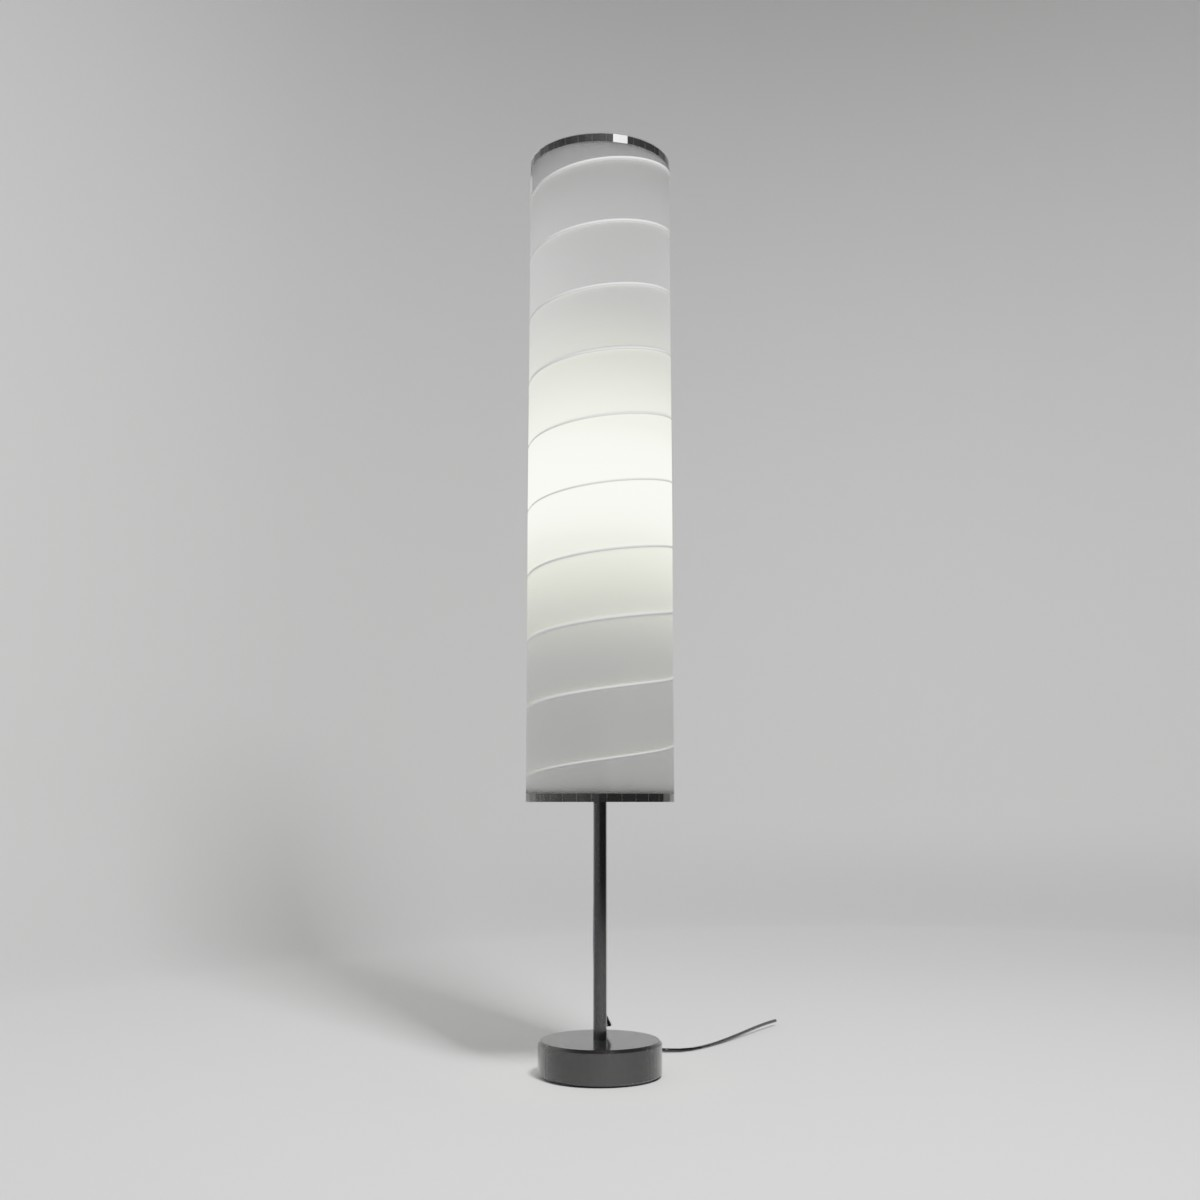 Ikea Inspired Floor Lamp Blender Market